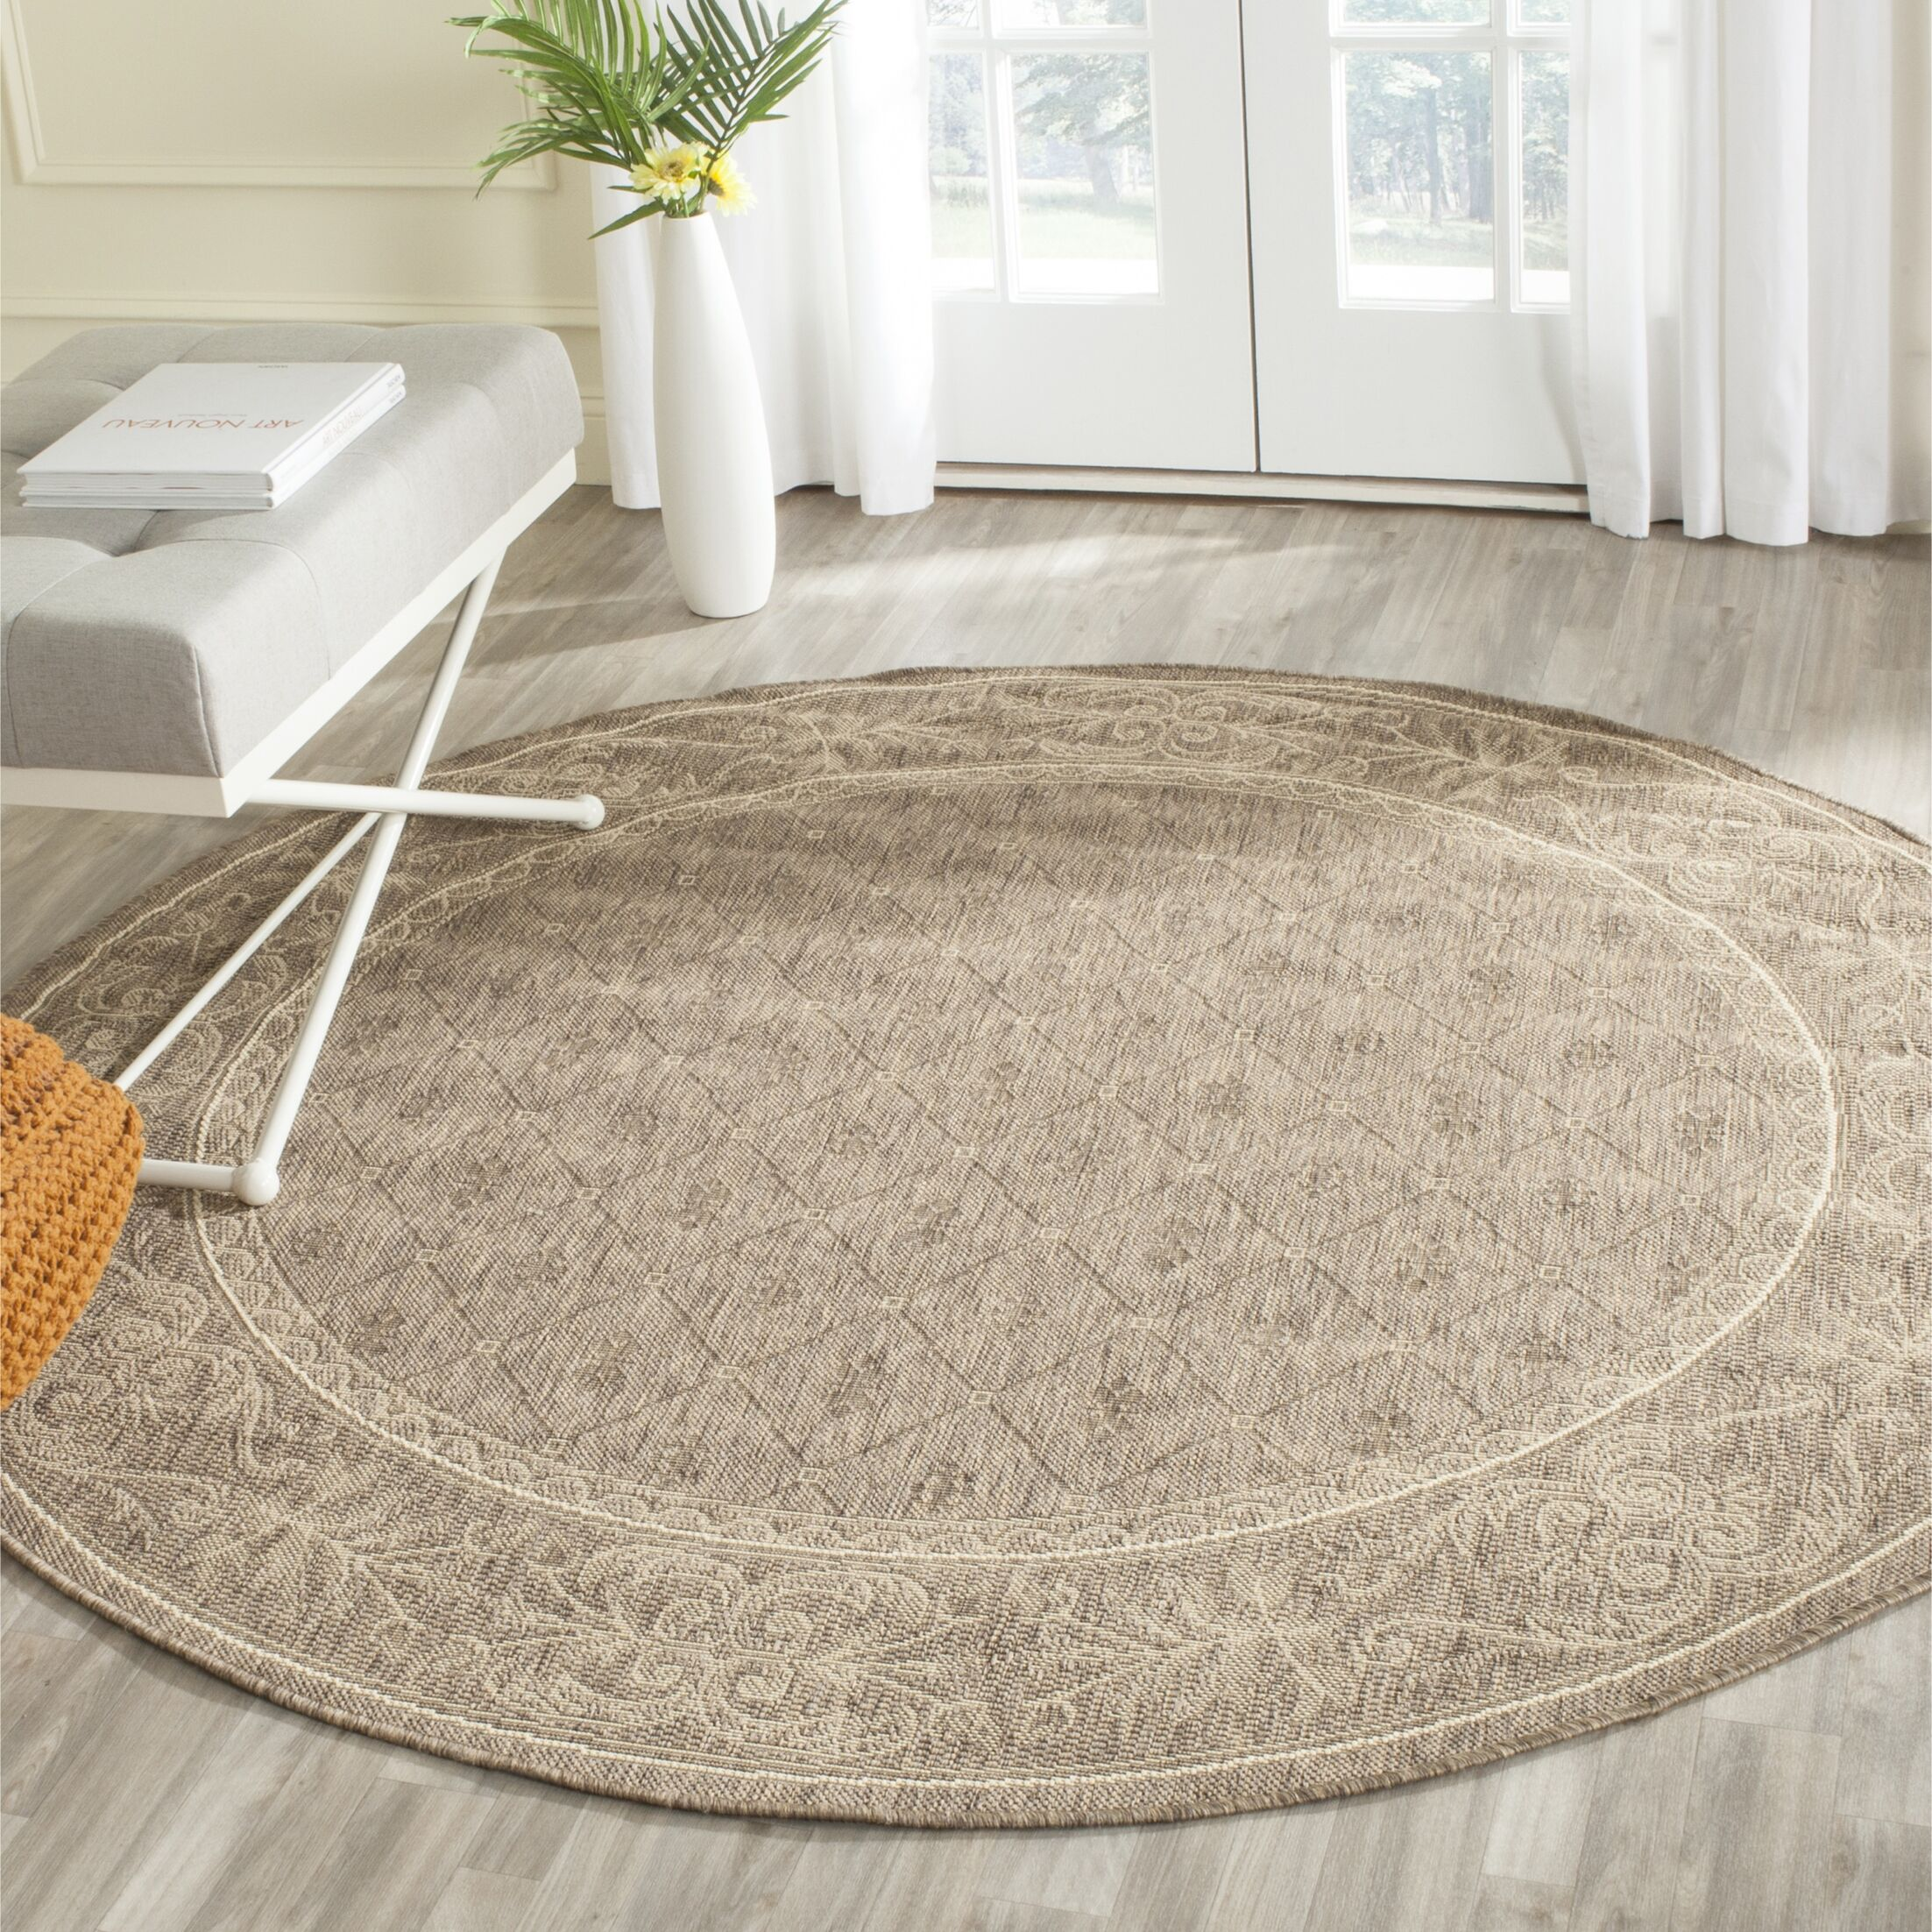 Short Brown Outdoor Area Rug Rug Size: Round 6'7